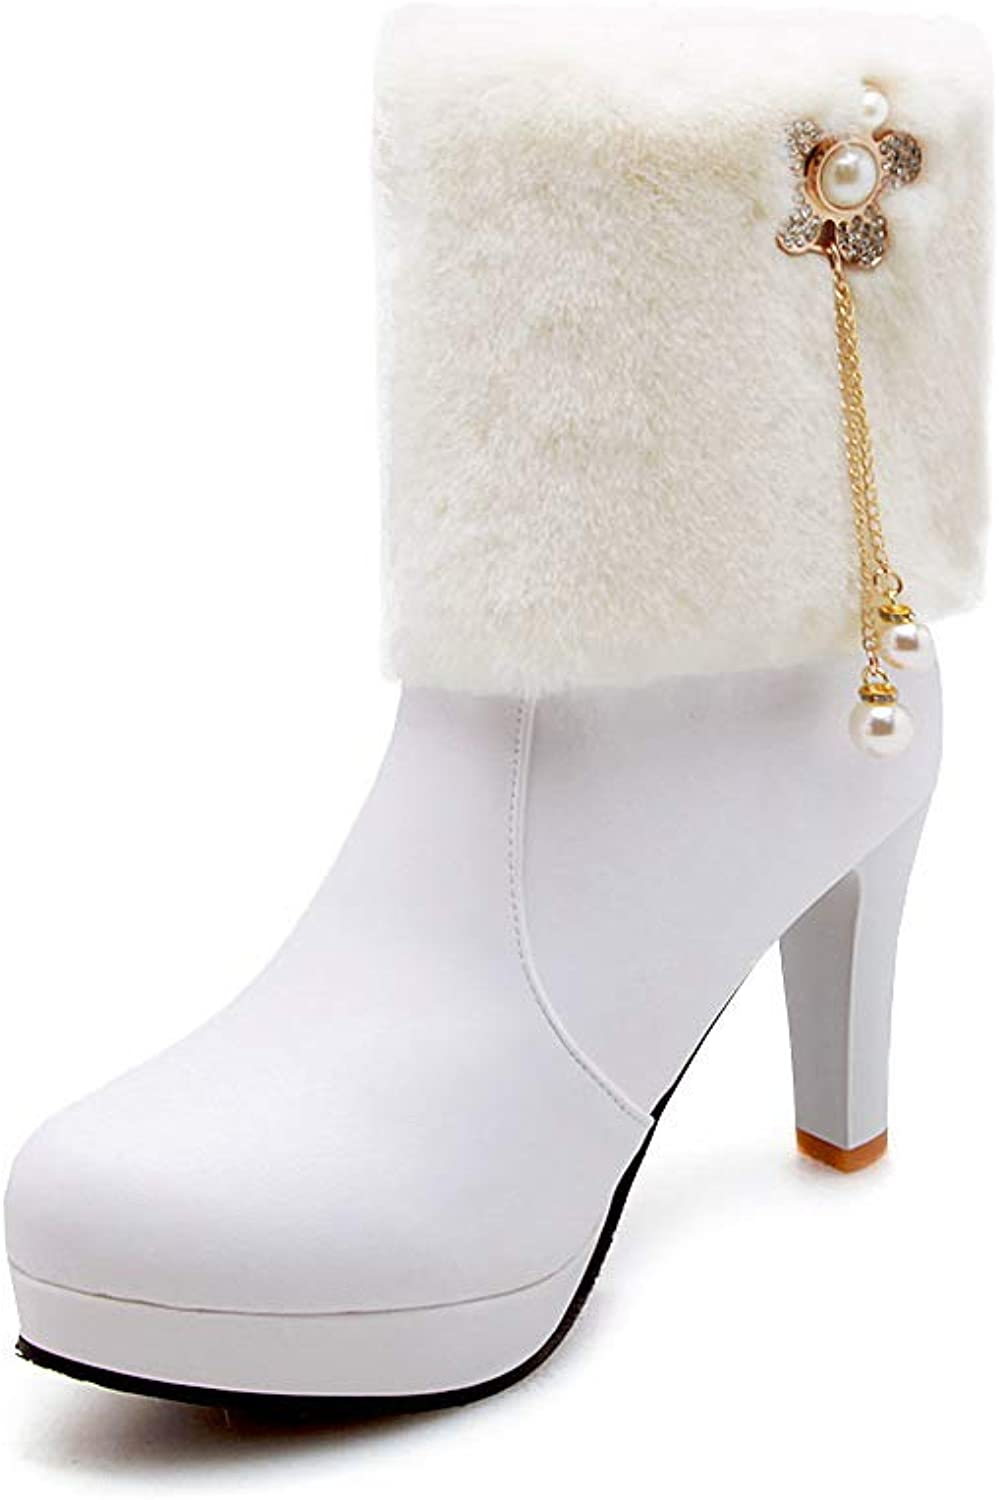 Women Fashion Plush Ankle Boots 2018 Winter New Warm Rhinestones Pearl Snow Boots Large Size 4043 High Heel Boots